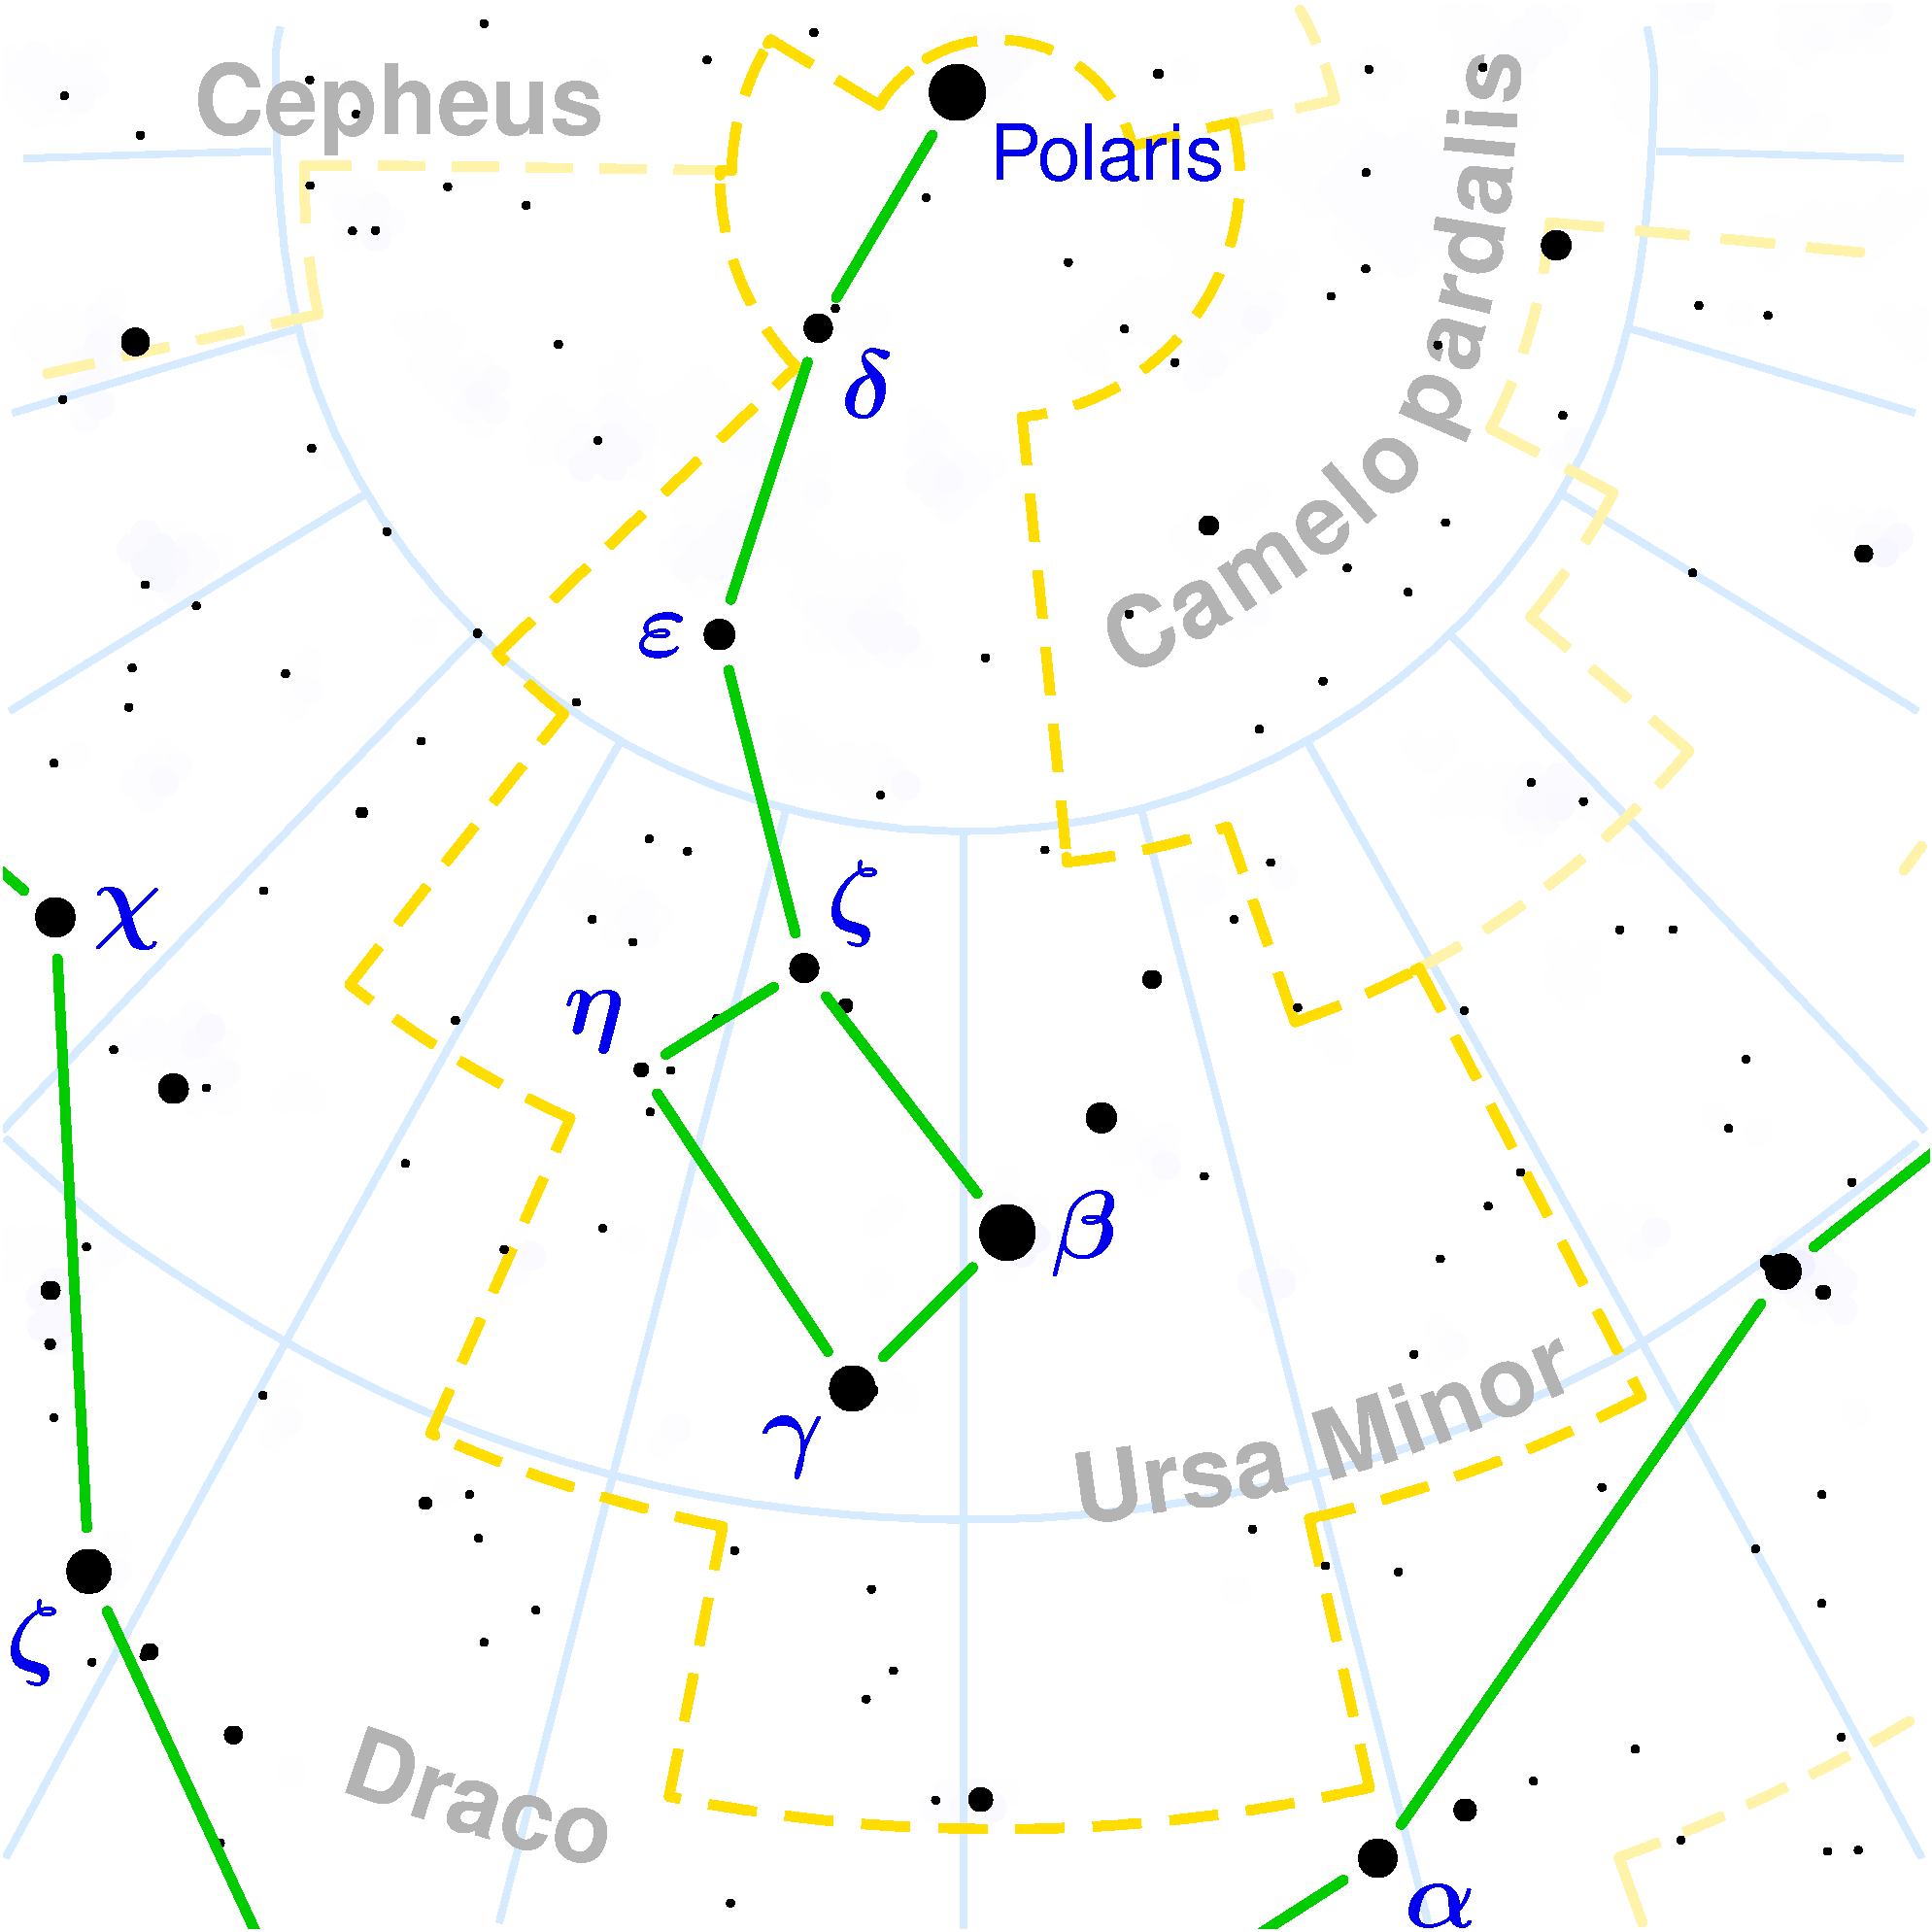 http://upload.wikimedia.org/wikipedia/commons/0/04/Ursa_Minor_constellation_map.png